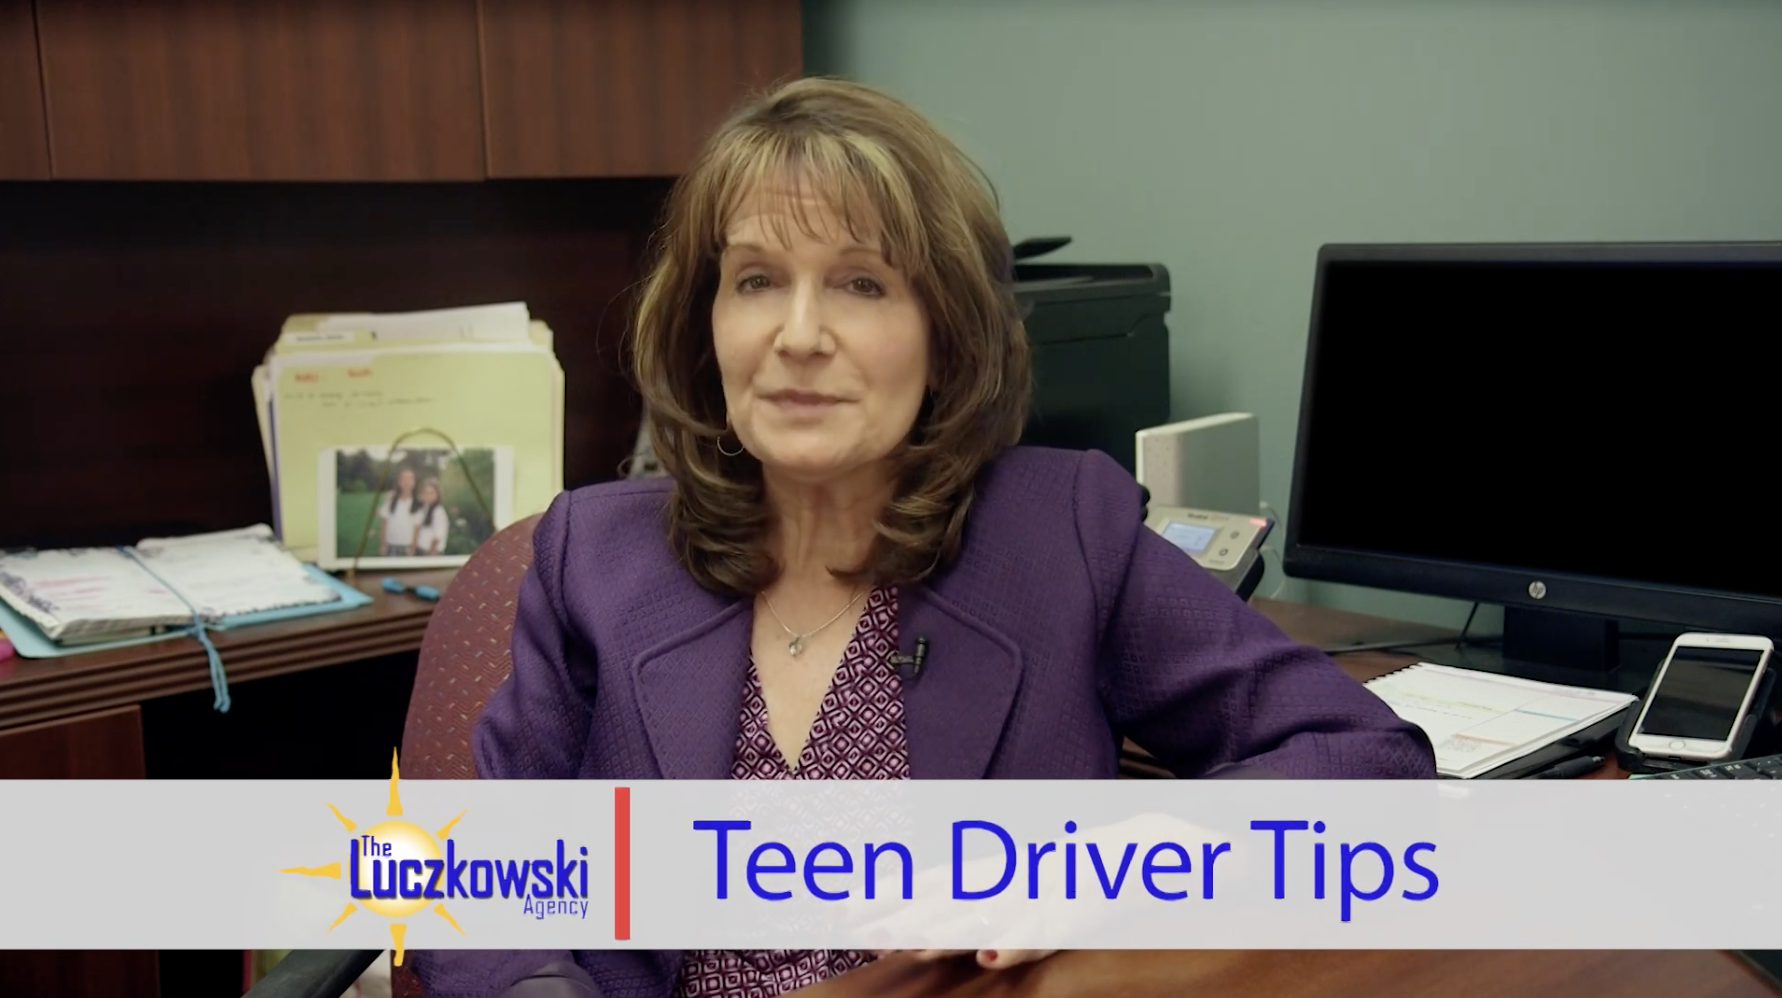 7 Tips for Teen Drivers